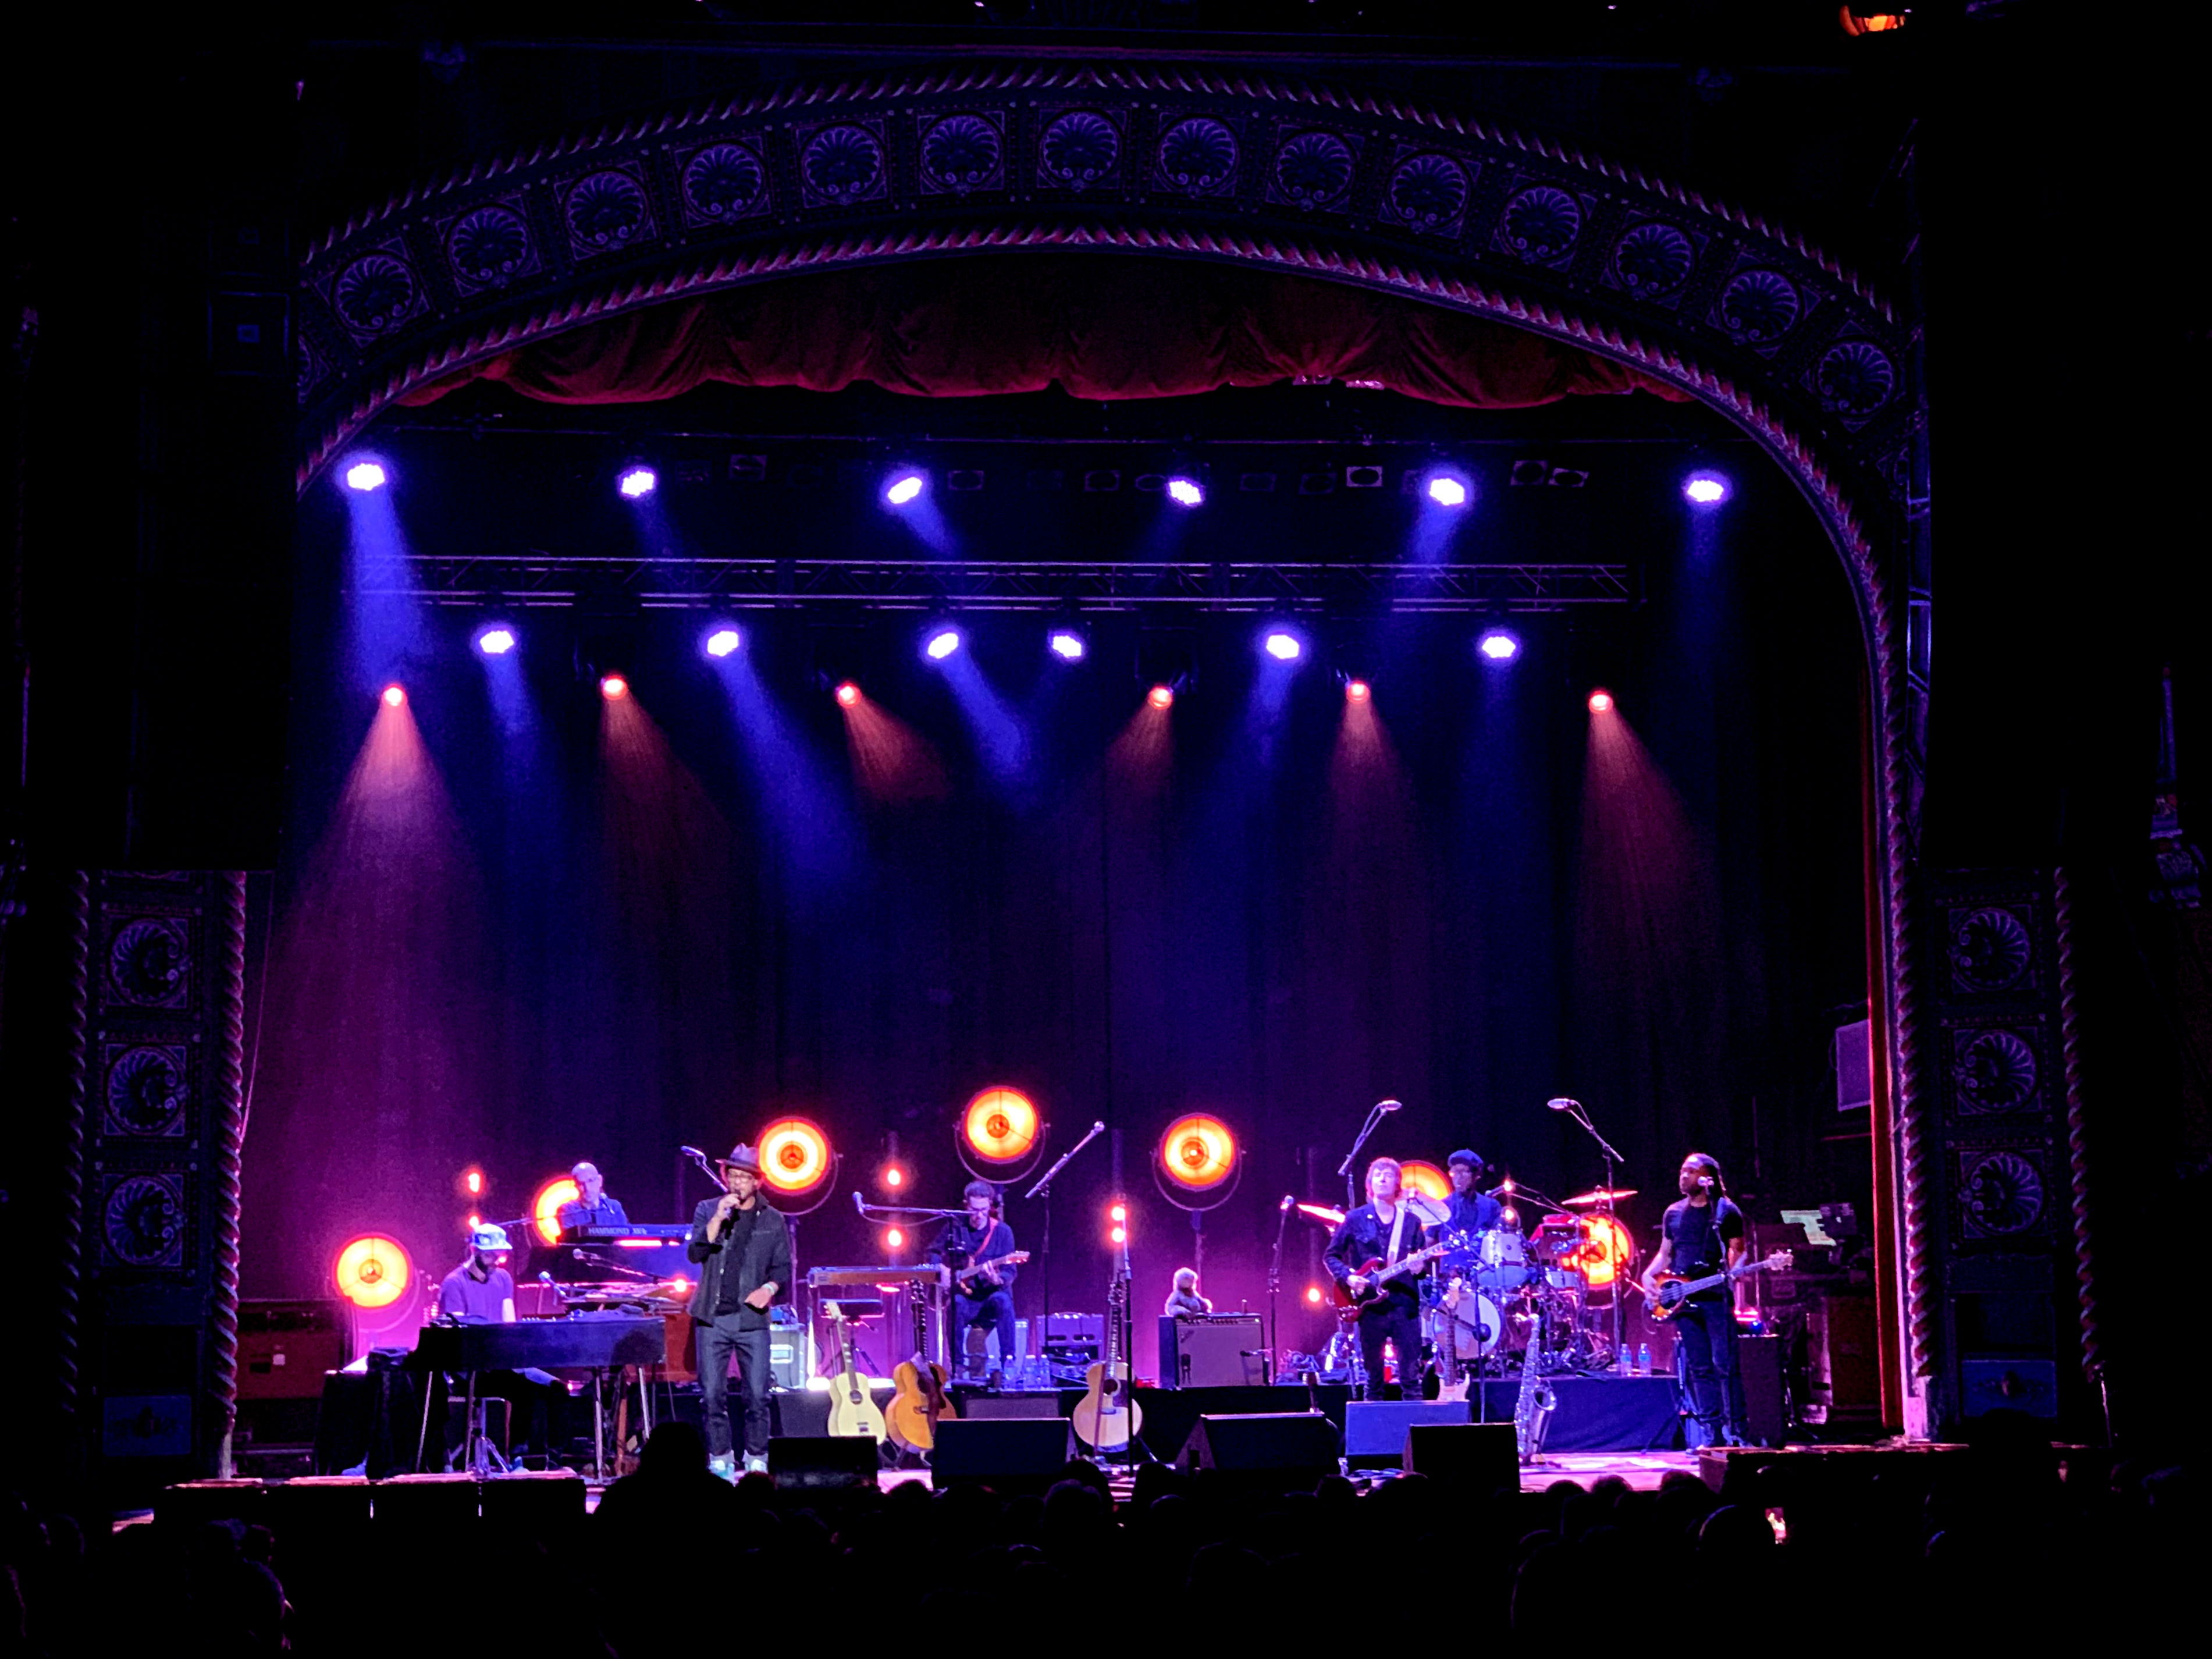 Bandit Brings The Light To Amos Lee S My New Moon Tour Plsn